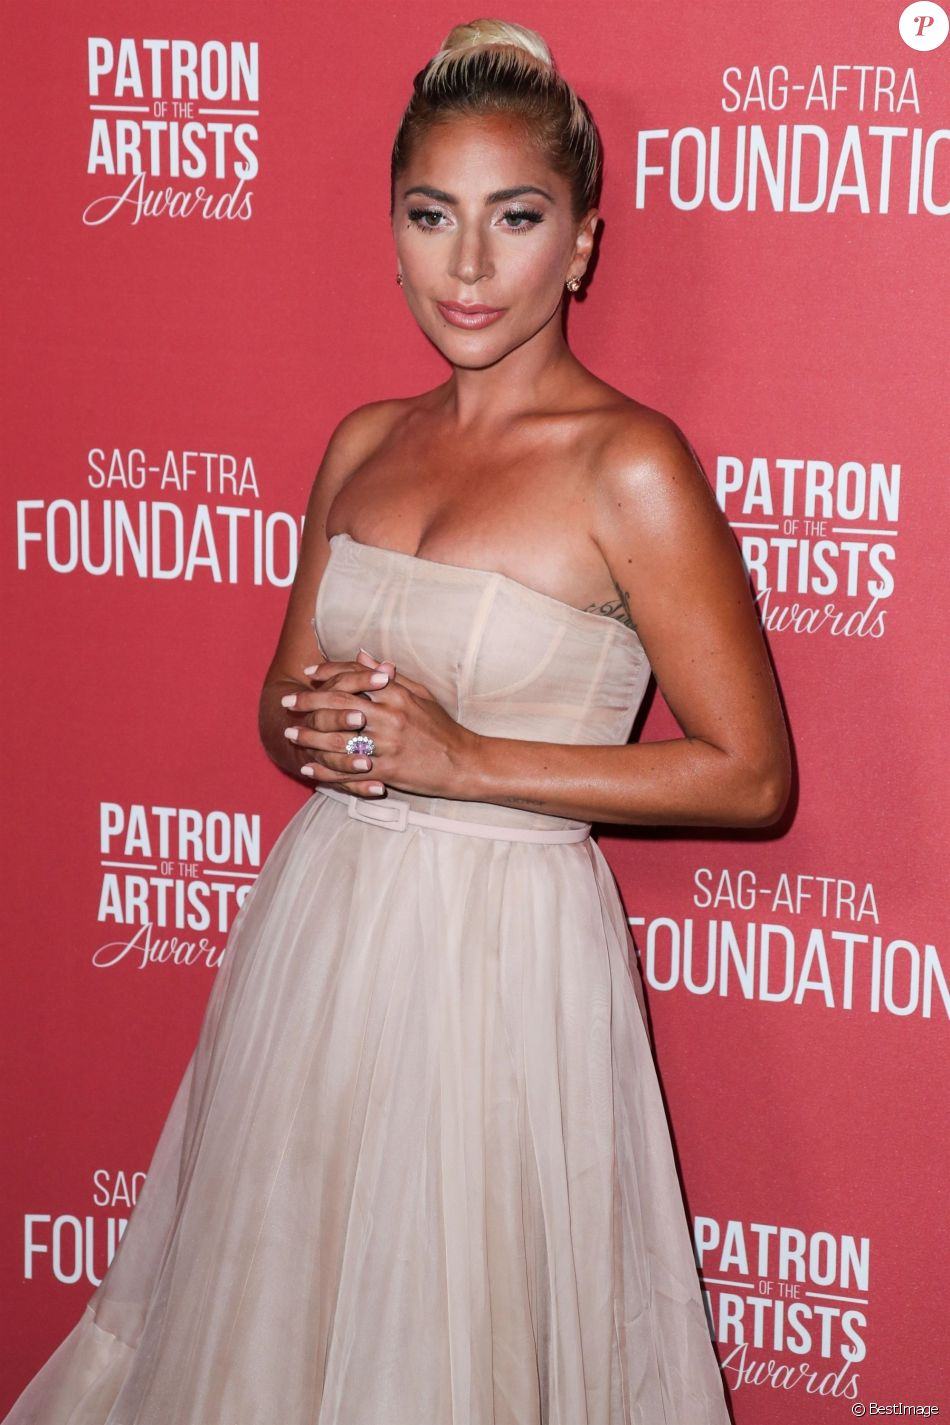 Lady Gaga au photocall de la 3ème soirée annuelle des SAG-AFTRA Foundation Patron Of The Artists Awards à Los Angeles, Californie, Etats-Unis, le 8 novembre 2018.